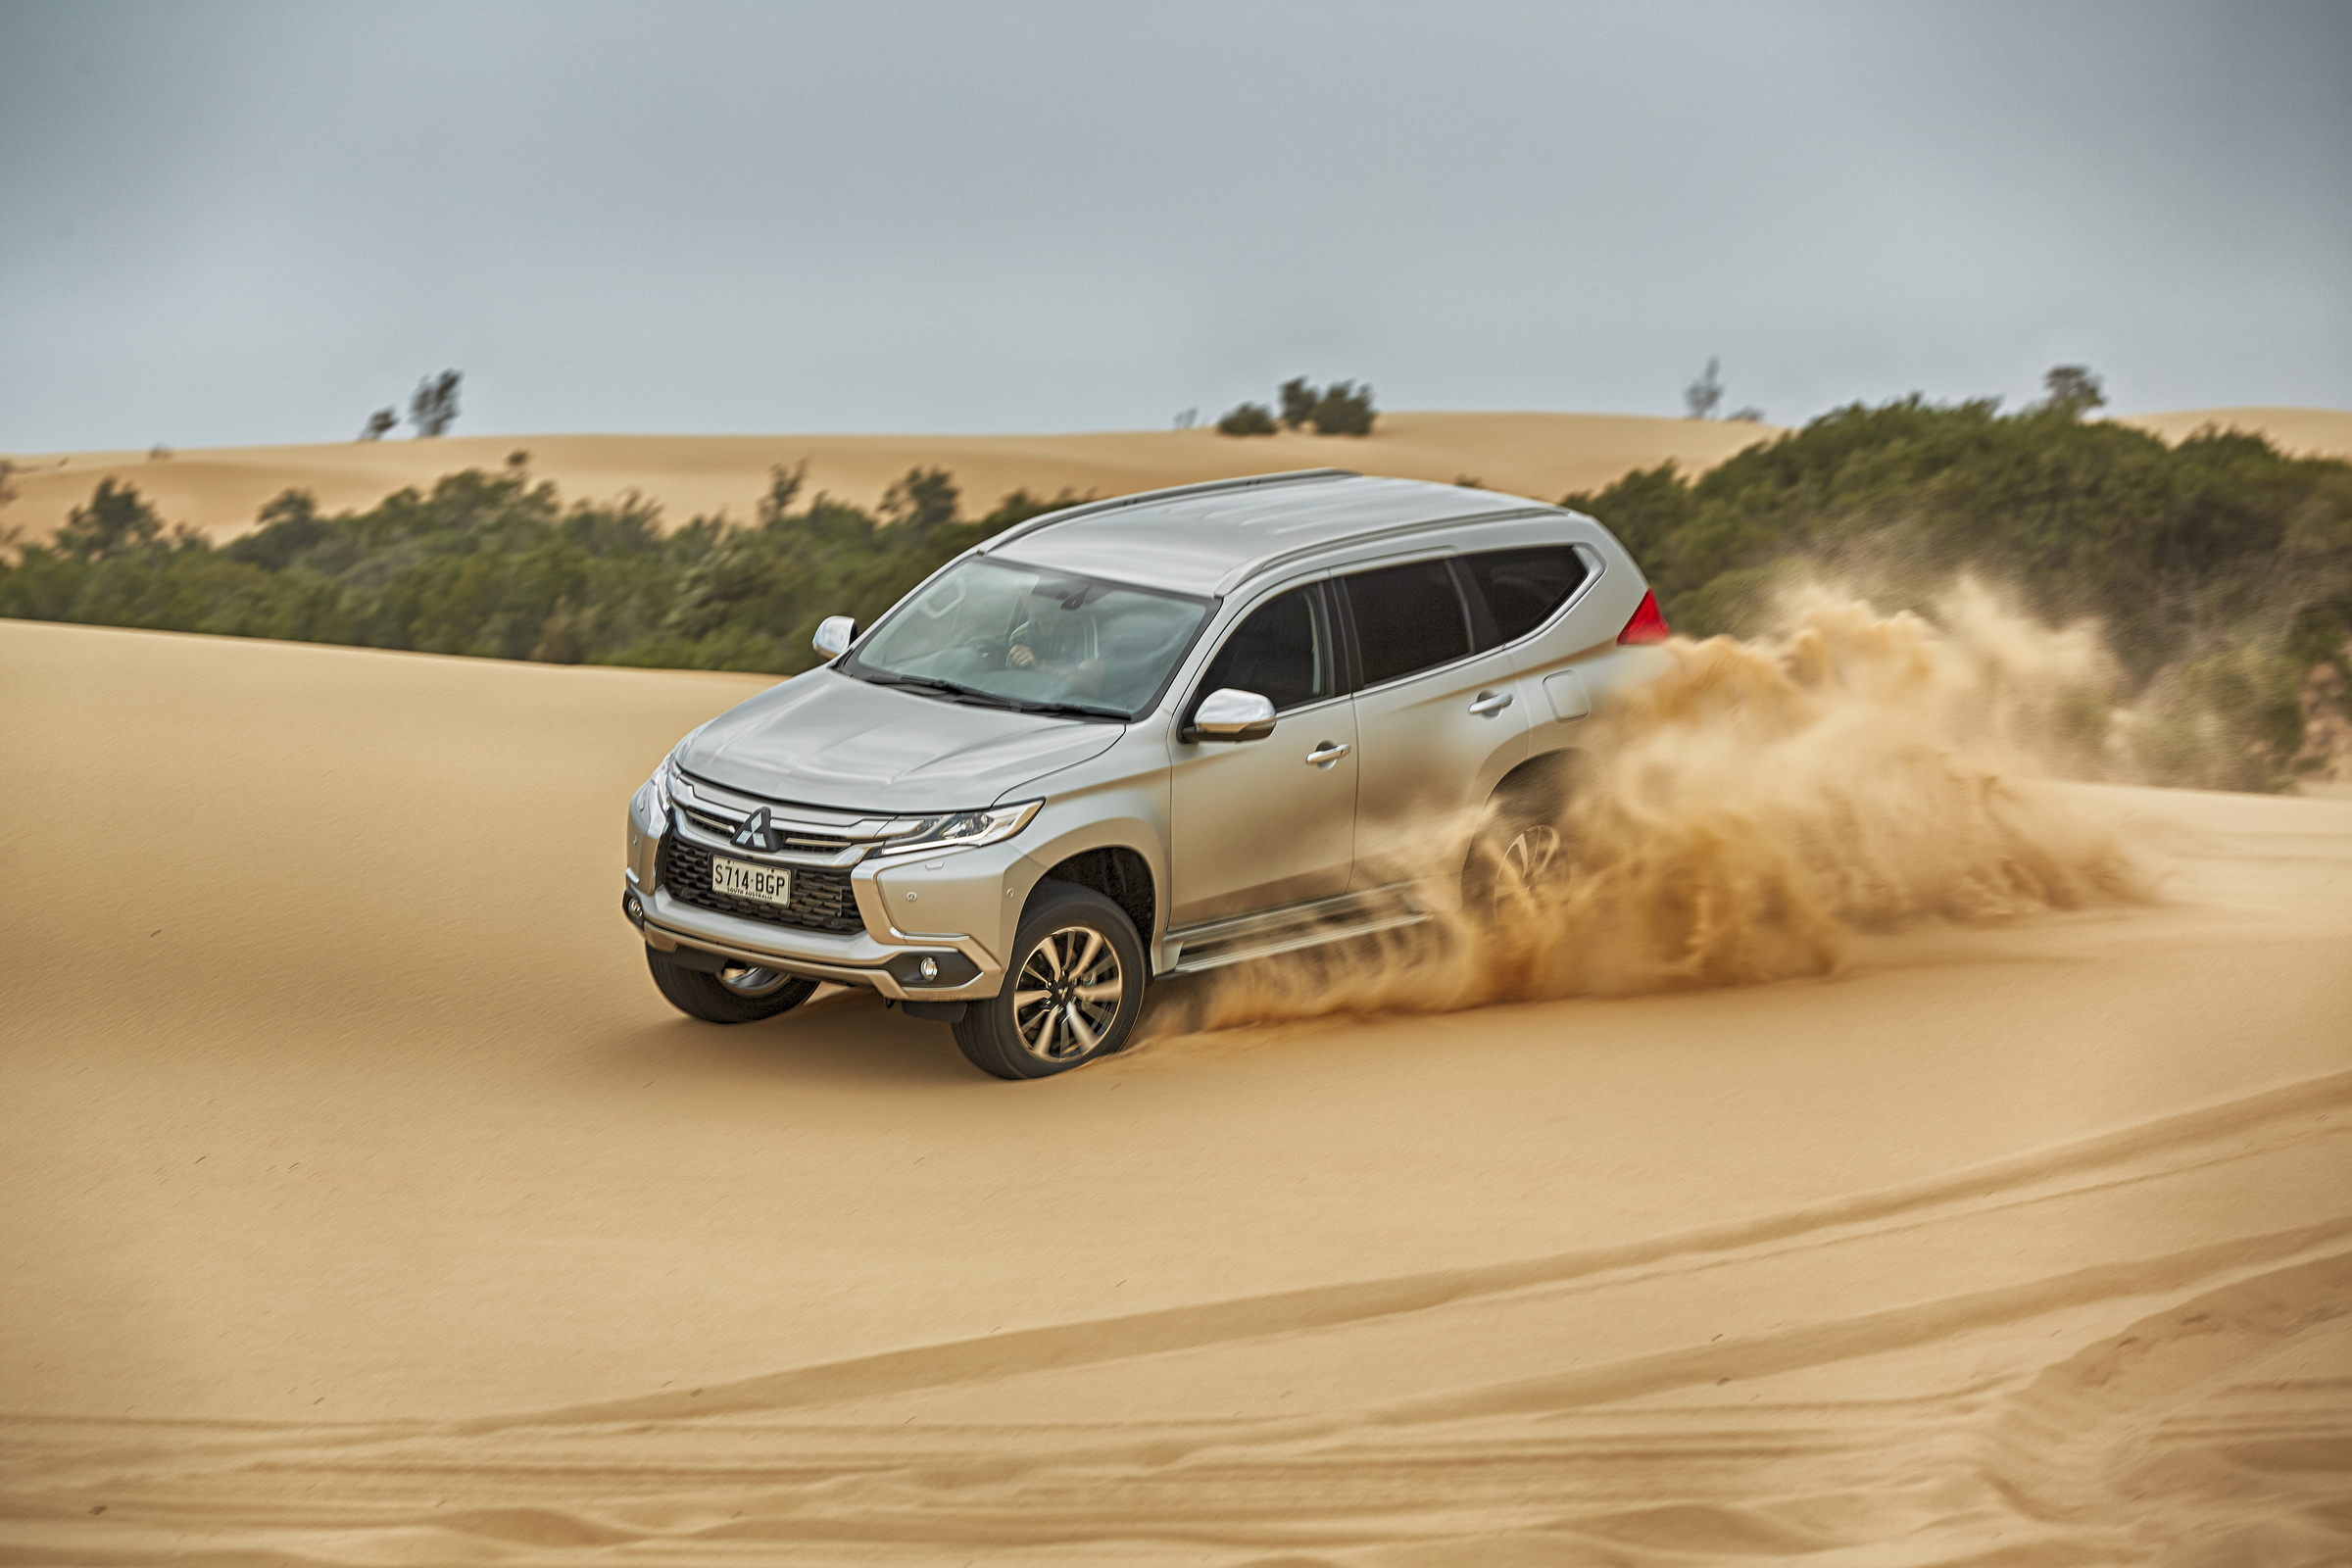 2016 Mitsubishi Pajero Sport Performance Test (Photo 3 of 23)